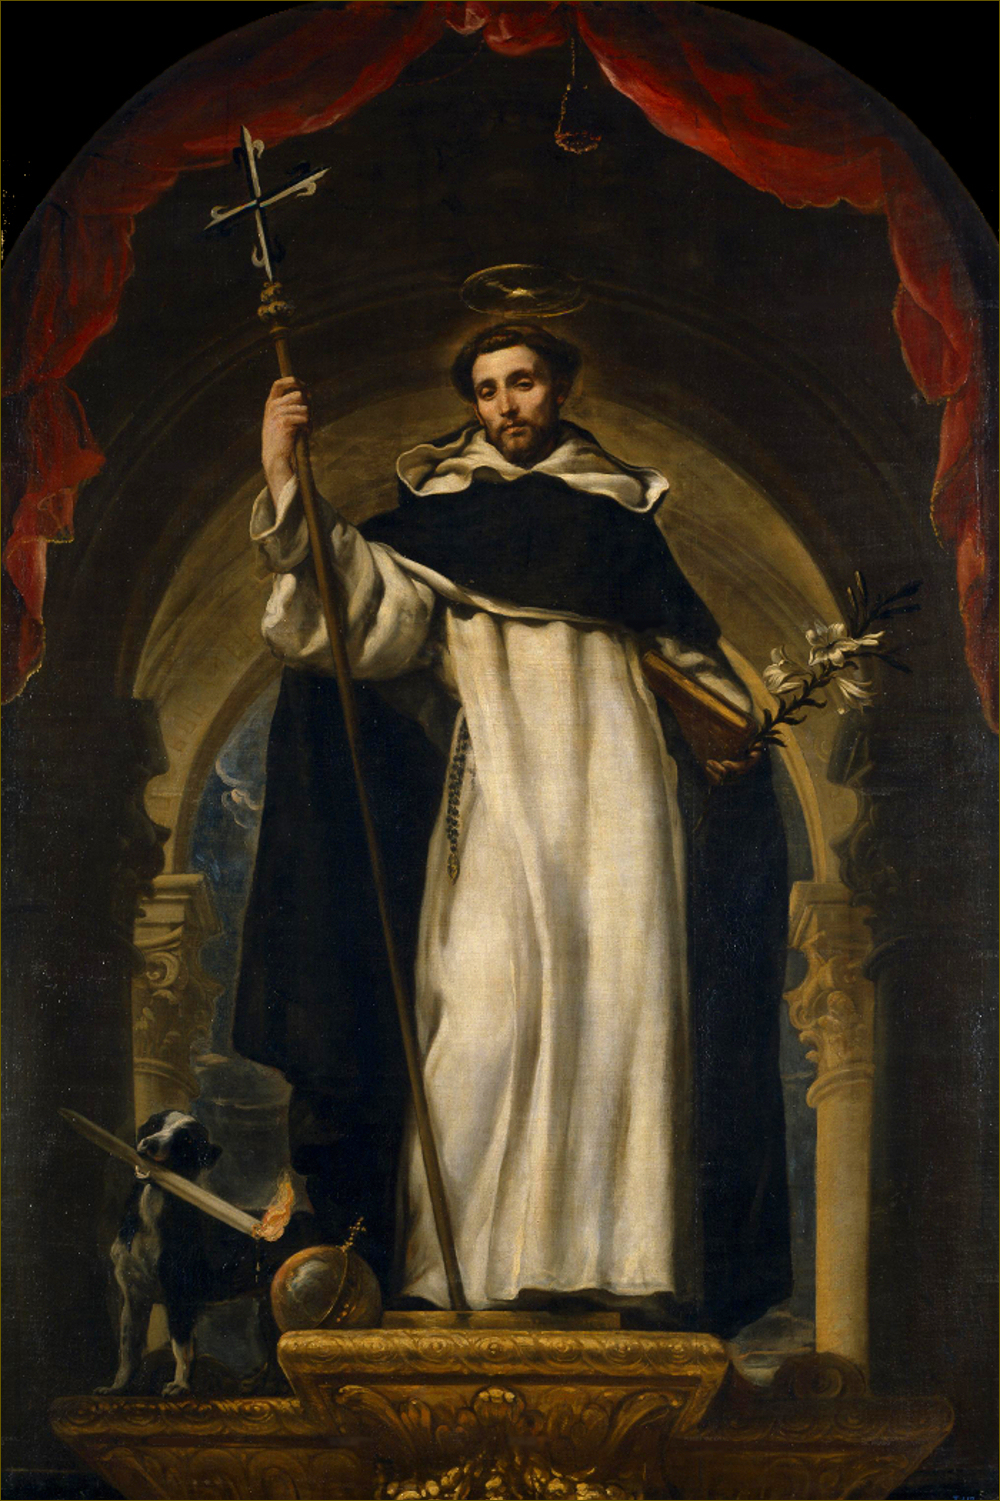 Saint Dominique de Guzman, par Claudio Coello (1685)